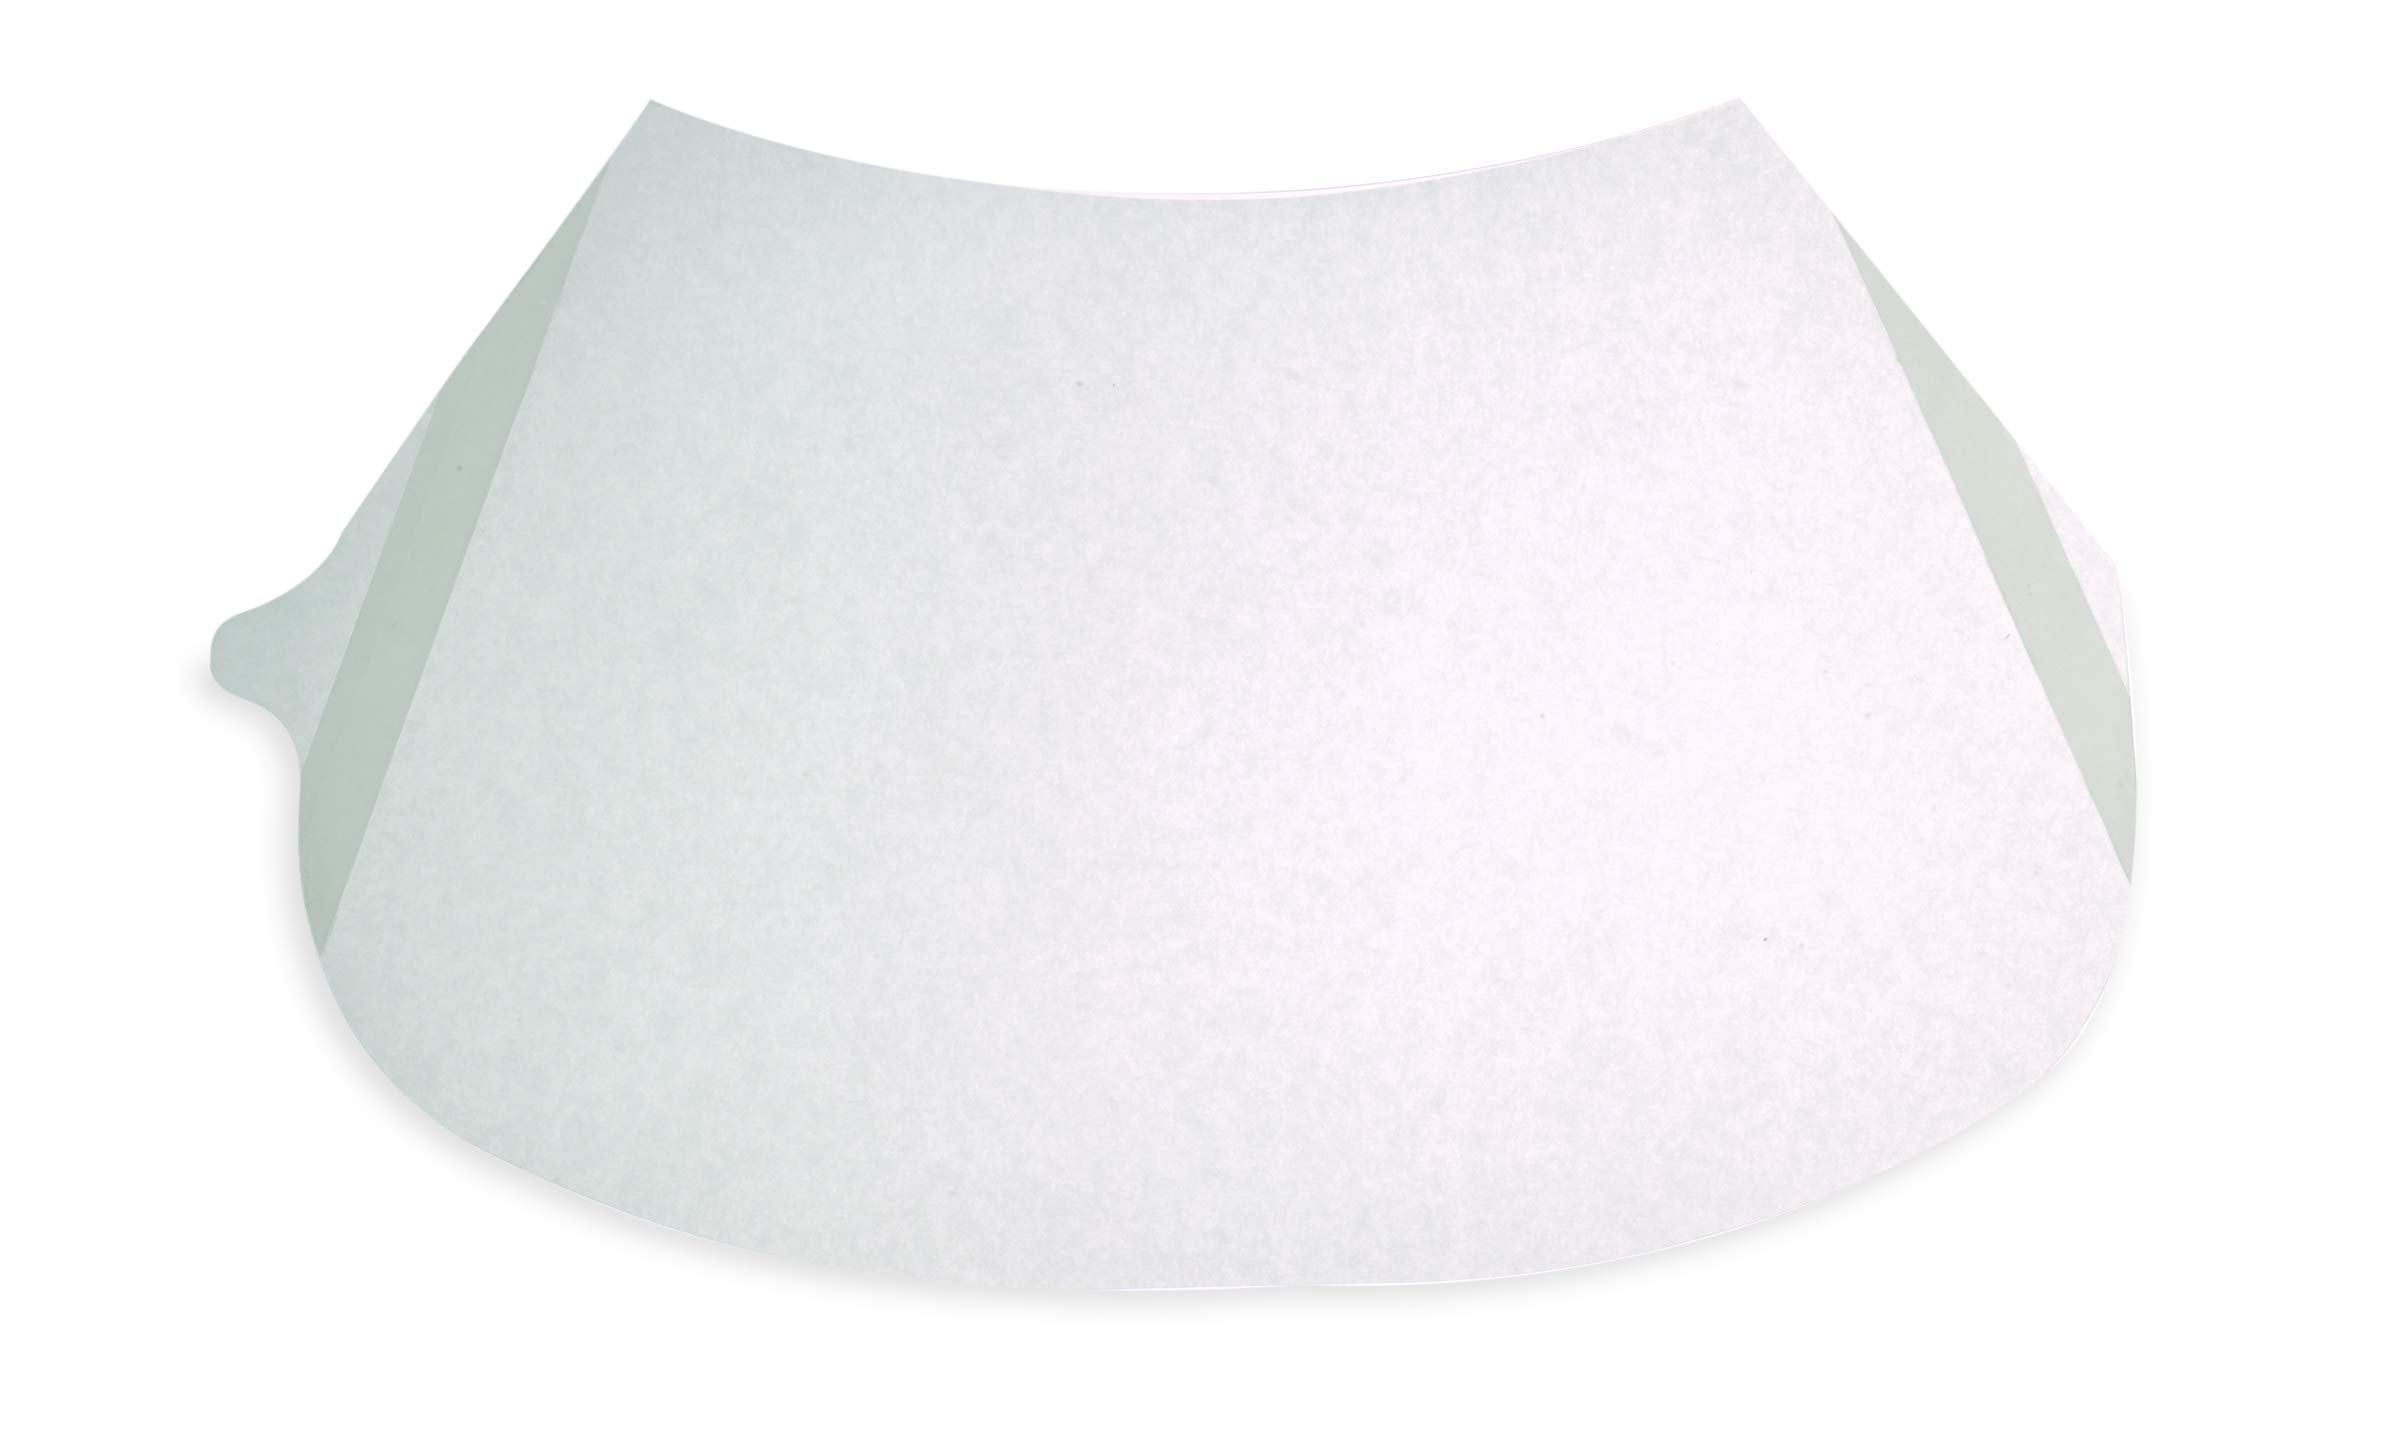 Honeywell 702028-H5 Clear Lens Cover, Standard, Clear (Pack of 25) by Honeywell